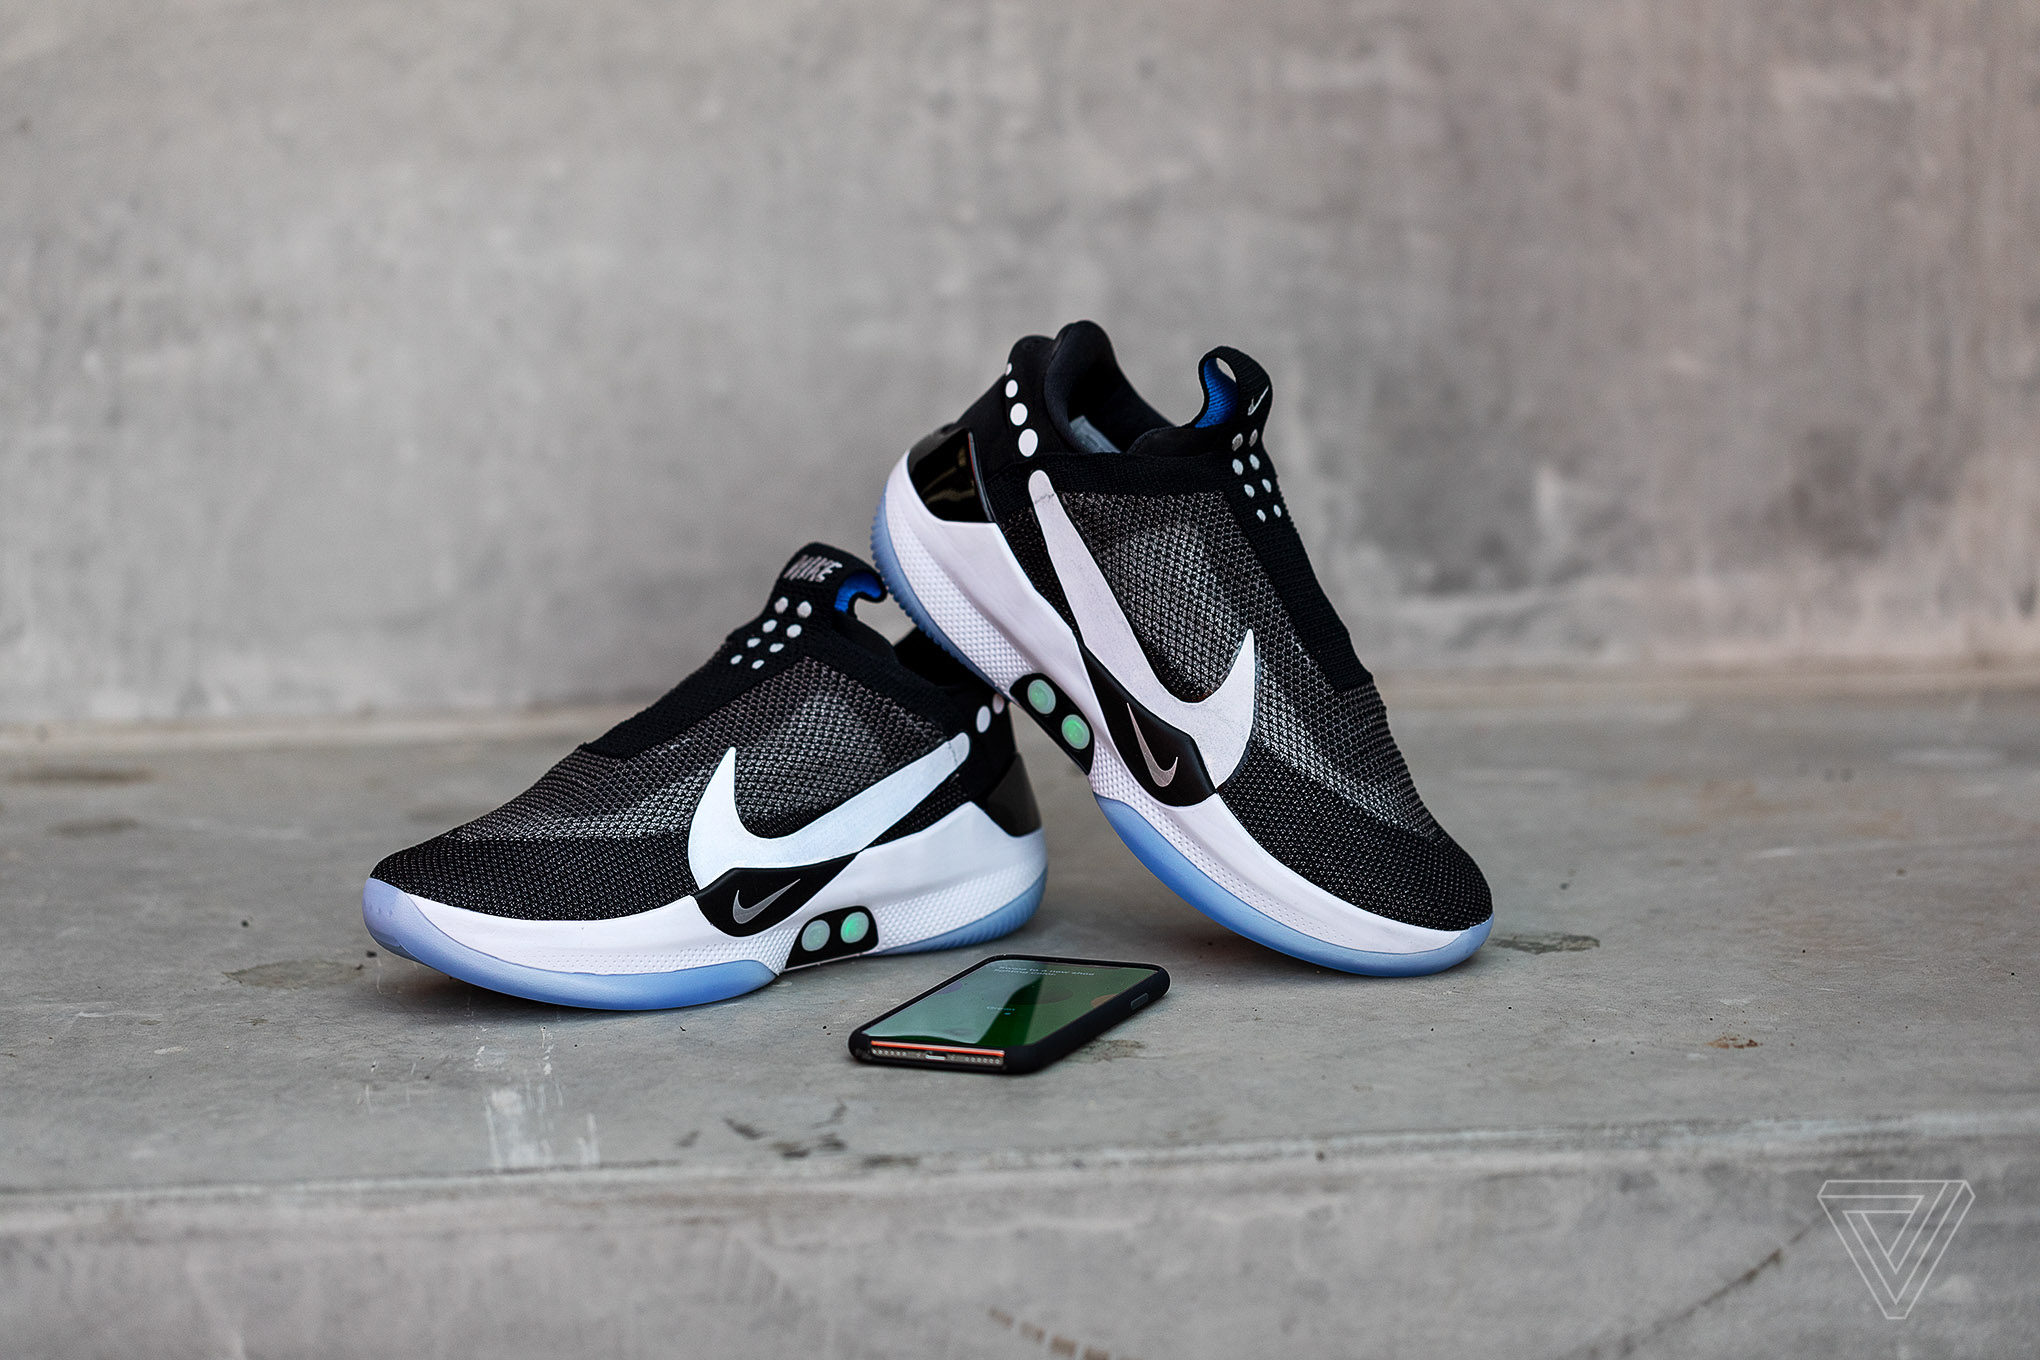 Nike s Adapt BB self-lacing sneakers let you tie your shoes from an ... 5a2575a345